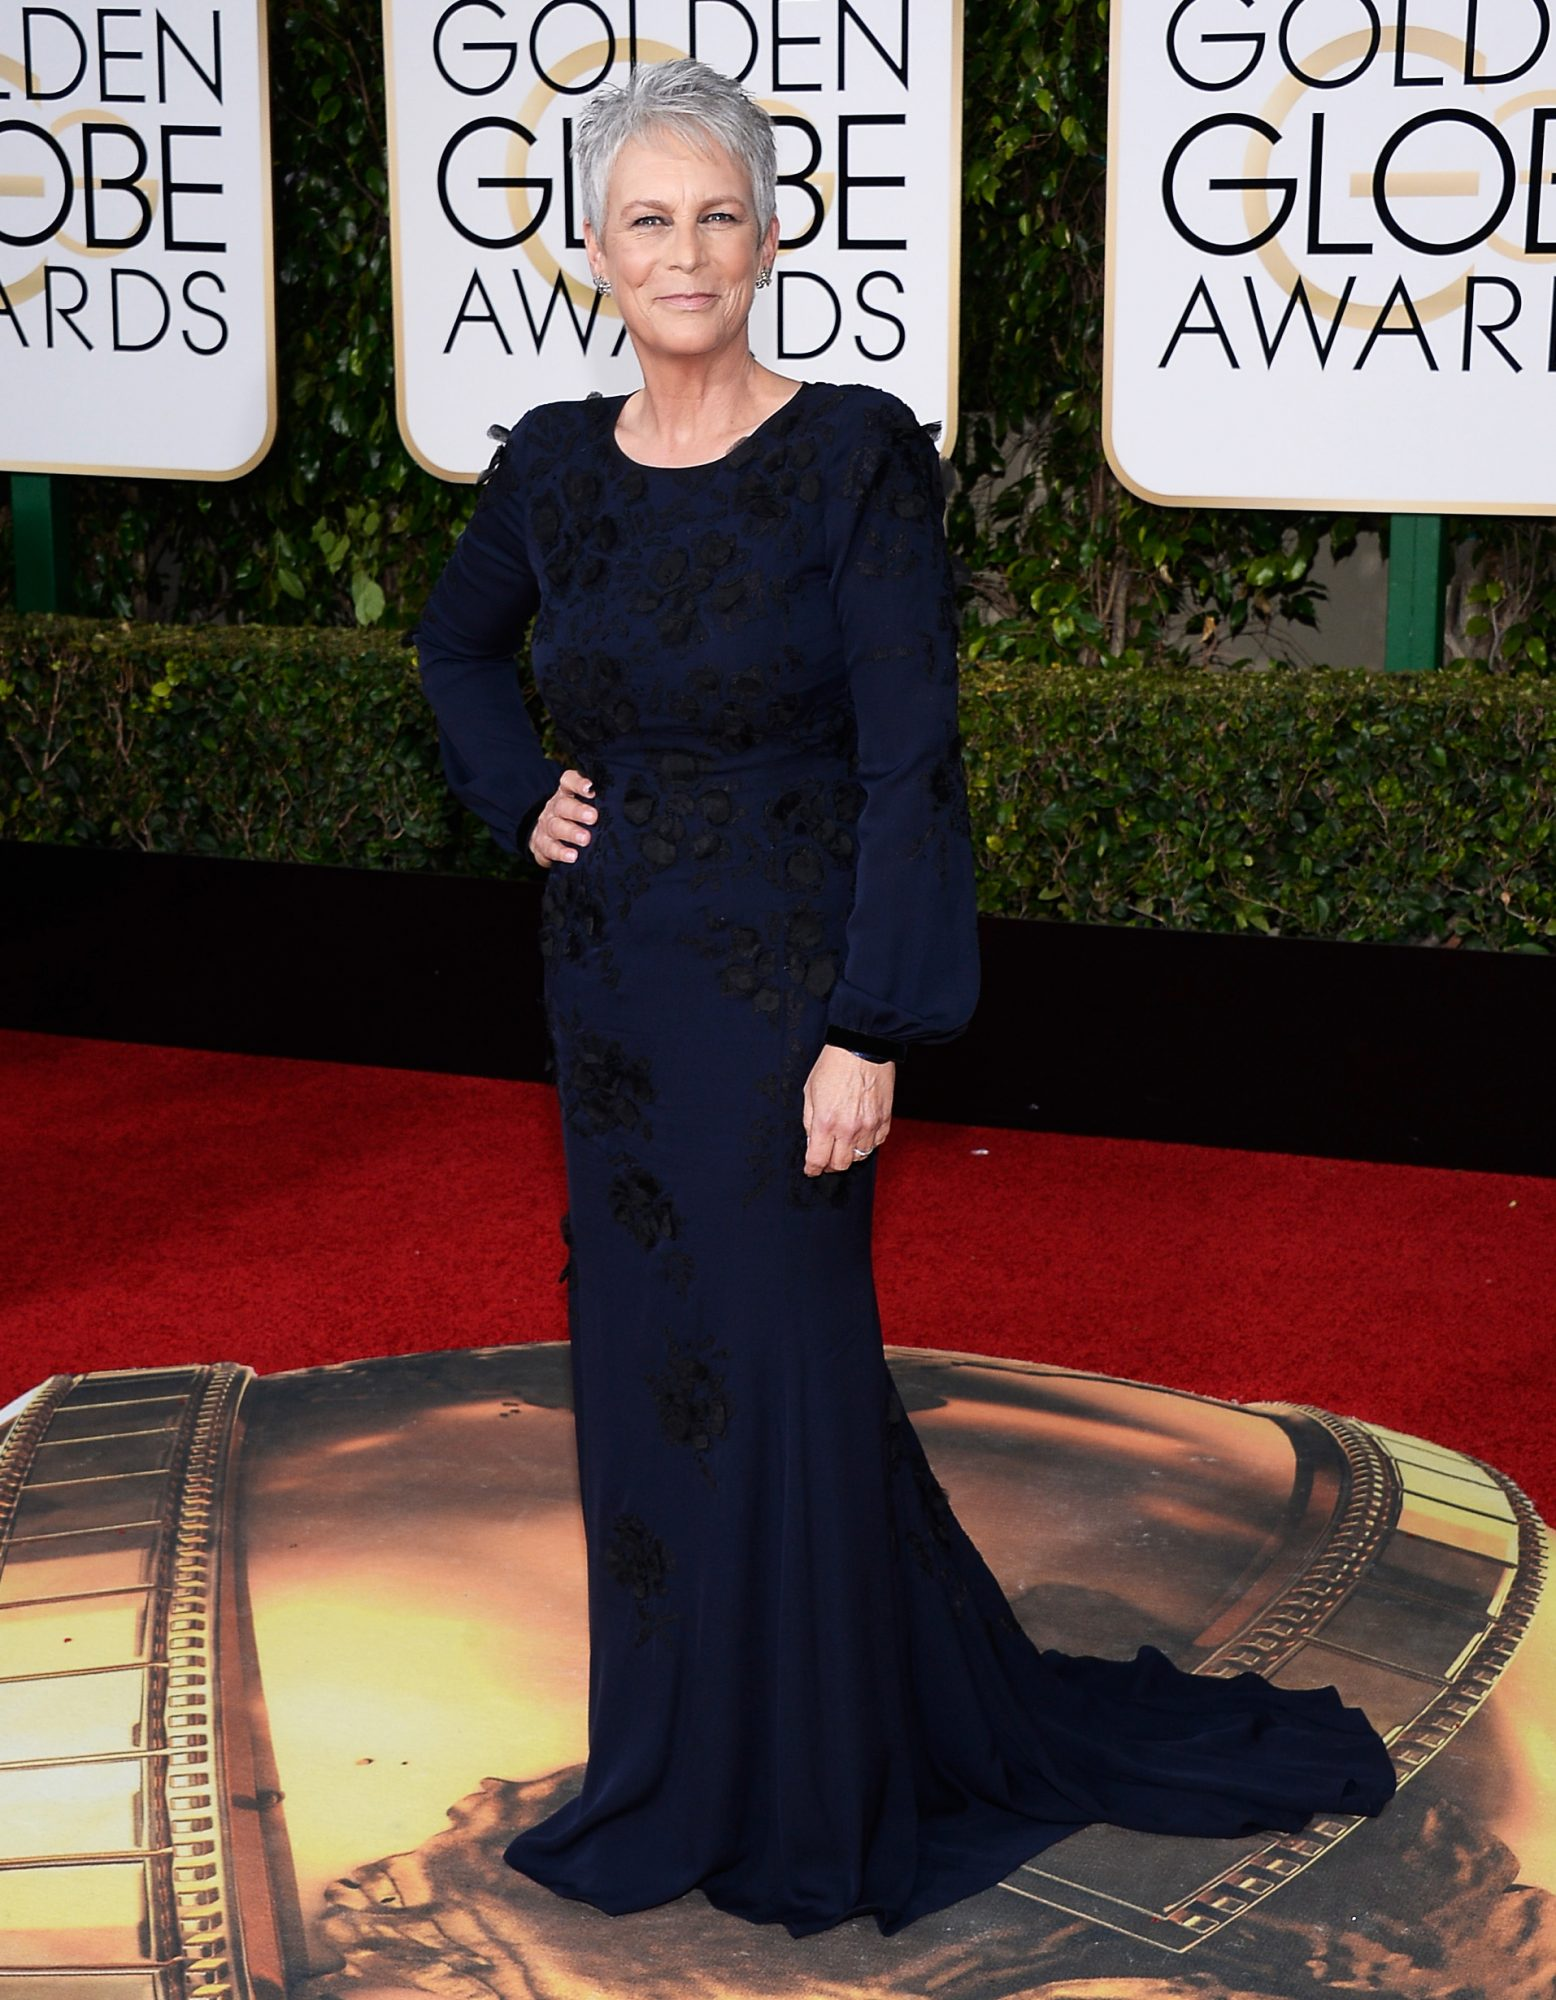 Jamie Lee Curtis at the 2016 Golden Globes